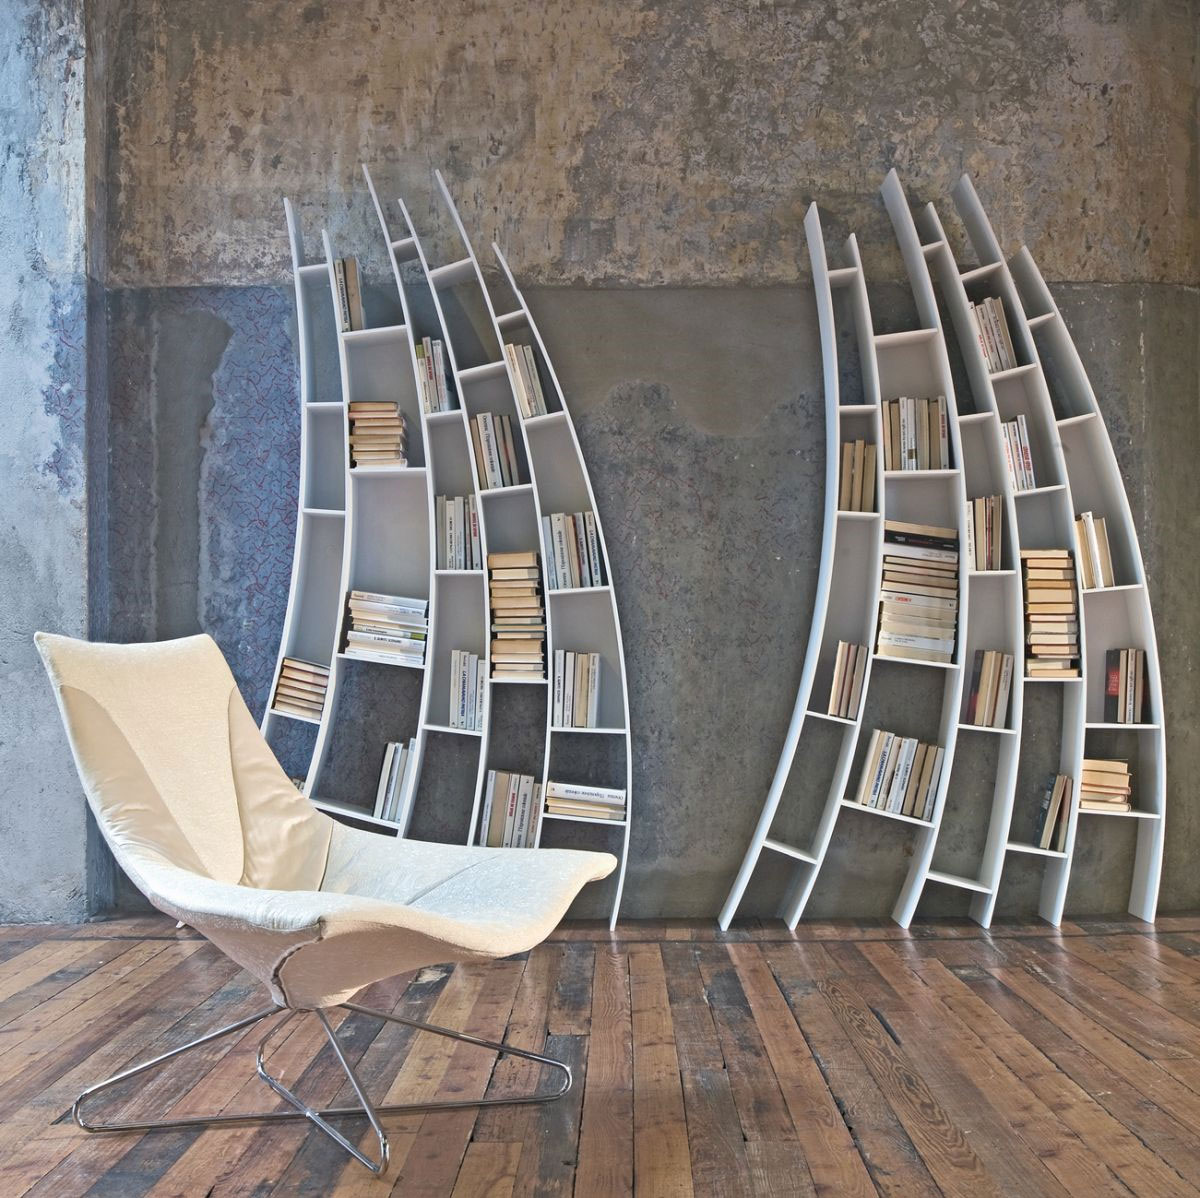 Primo Quarto: Sculptural Bookcase by Giuseppe Vigano